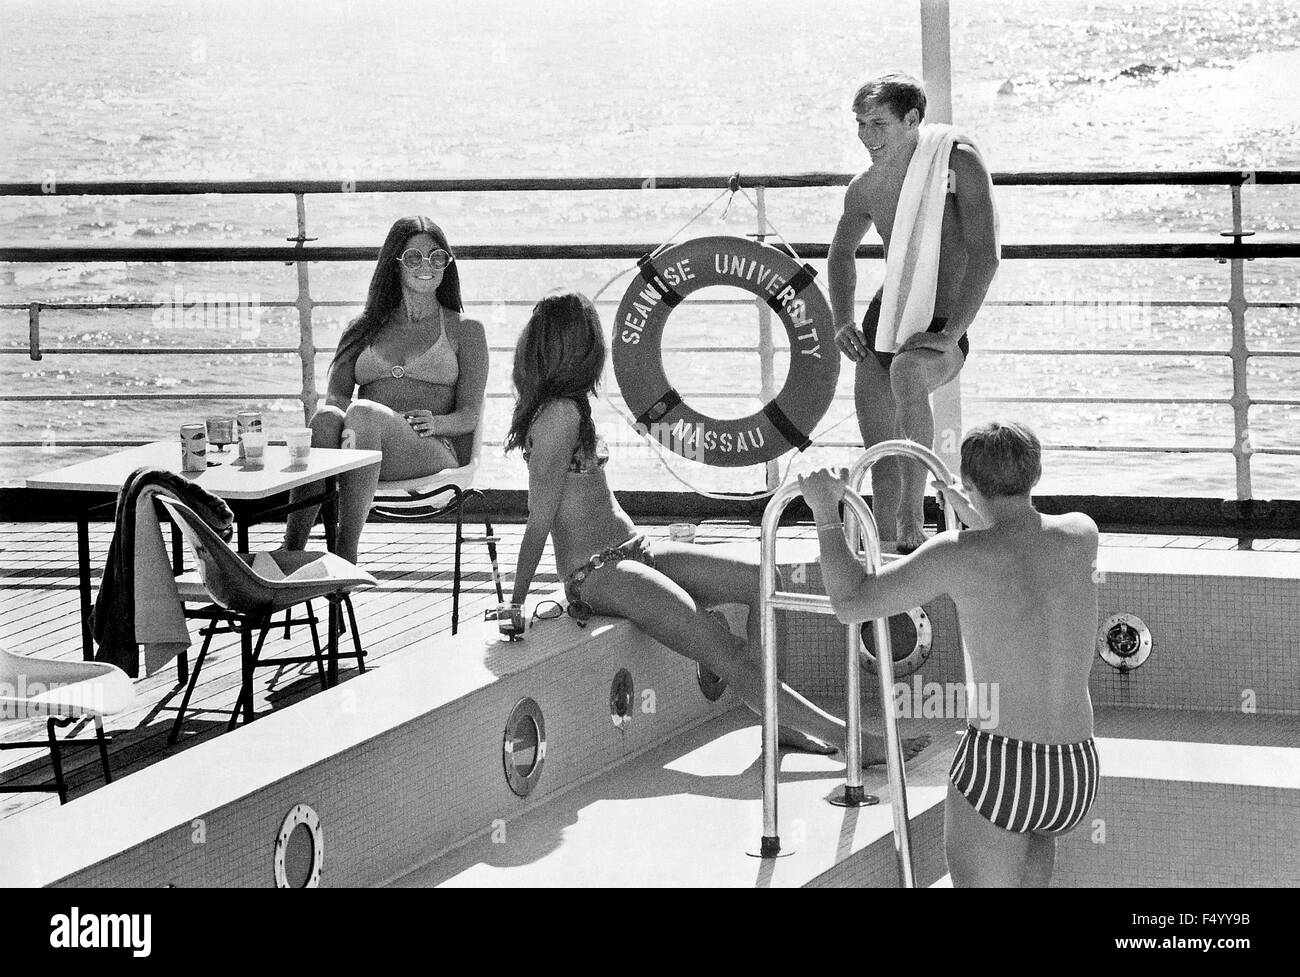 Young American students pose at the pool for publicity photos aboard Seawise University, the former RMS Queen Elizabeth, - Stock Image